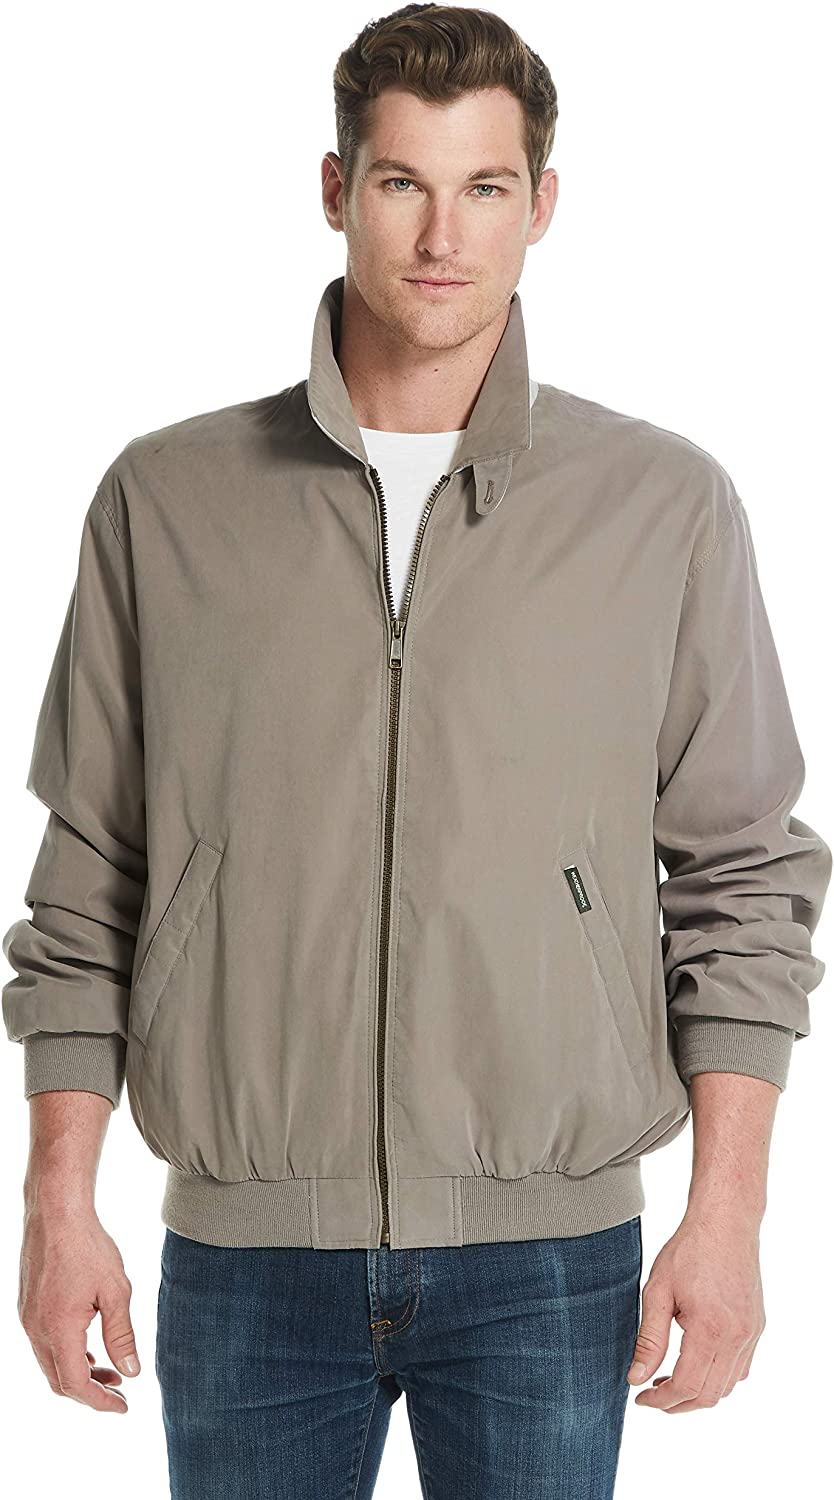 Weatherproof Garment Co. Mens Microfiber Classic Jacket at  Men's Clothing store